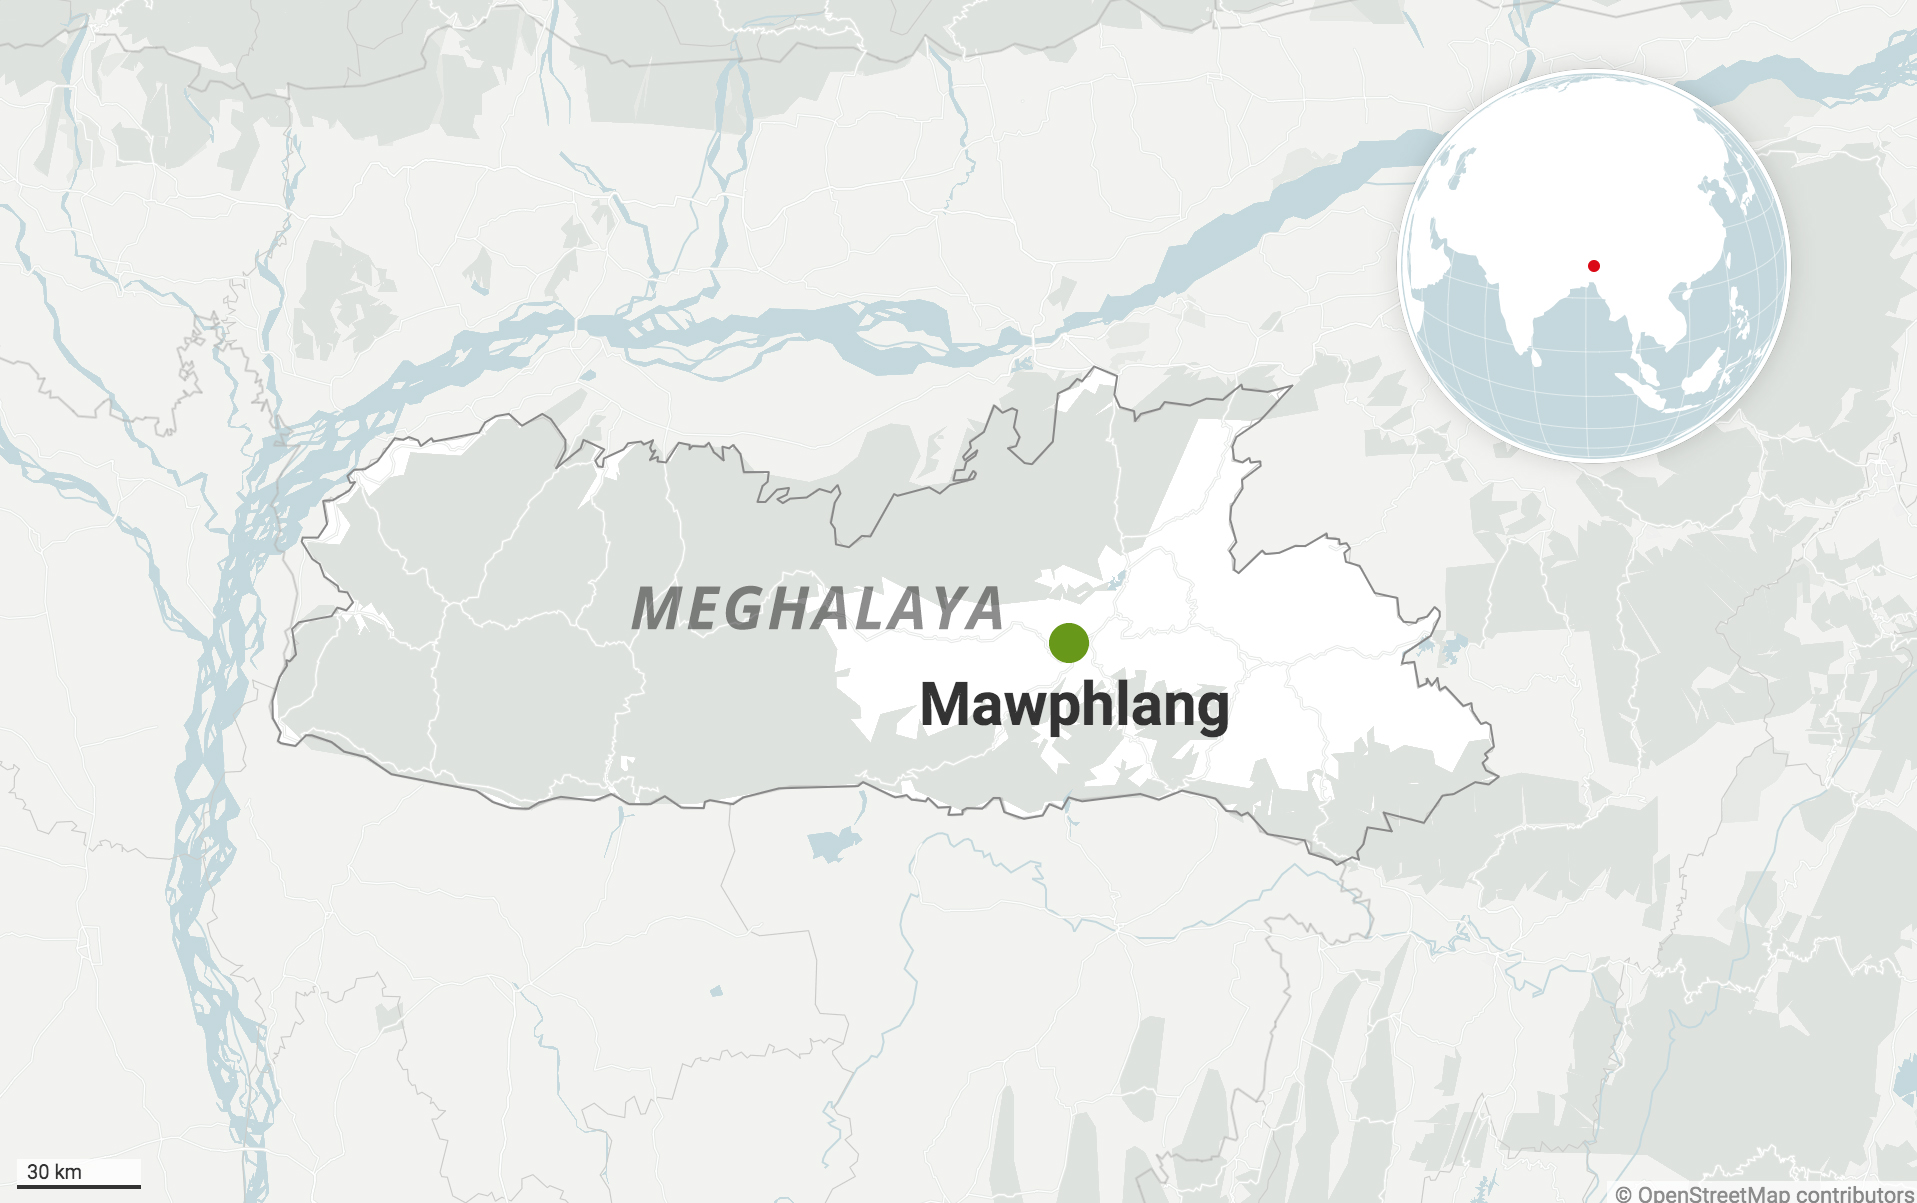 Mawphlang in East Khasi Hills district of Meghalaya. Map from Datawrapper.